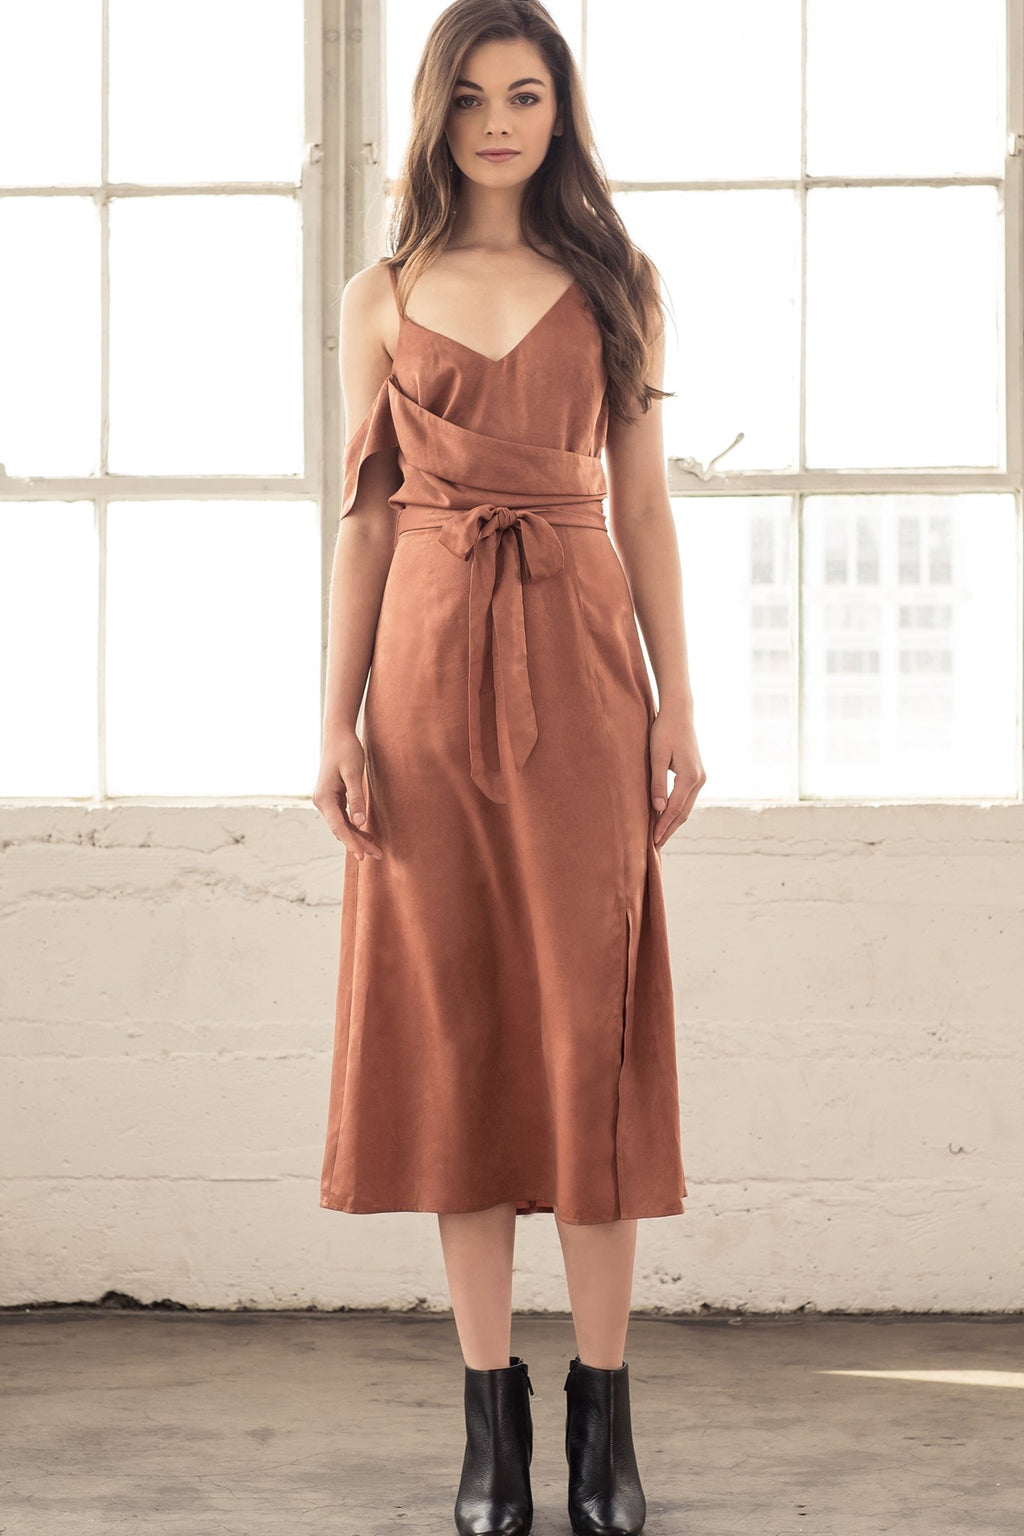 Women - Apparel - Jumpsuits/Rompers:J.O.A.:One Side Cold Shoulder Dress:WKND threads